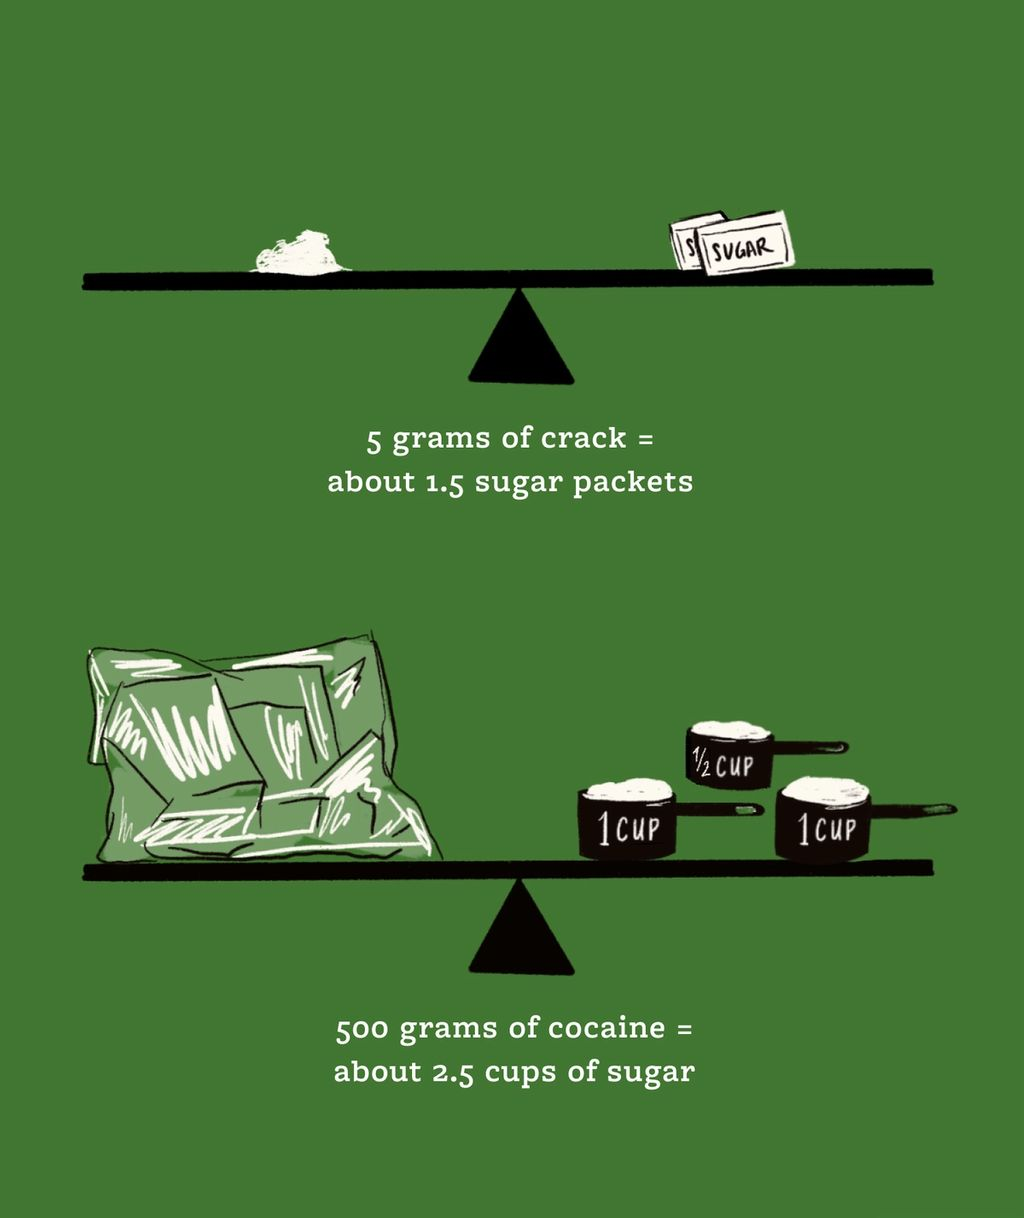 Infographic showing 5 grams crack equals about 1.5 sugar packets, 500 grams of cocaine equals about 2.5 cups sugar in weight. Both equal 5 years in prison.